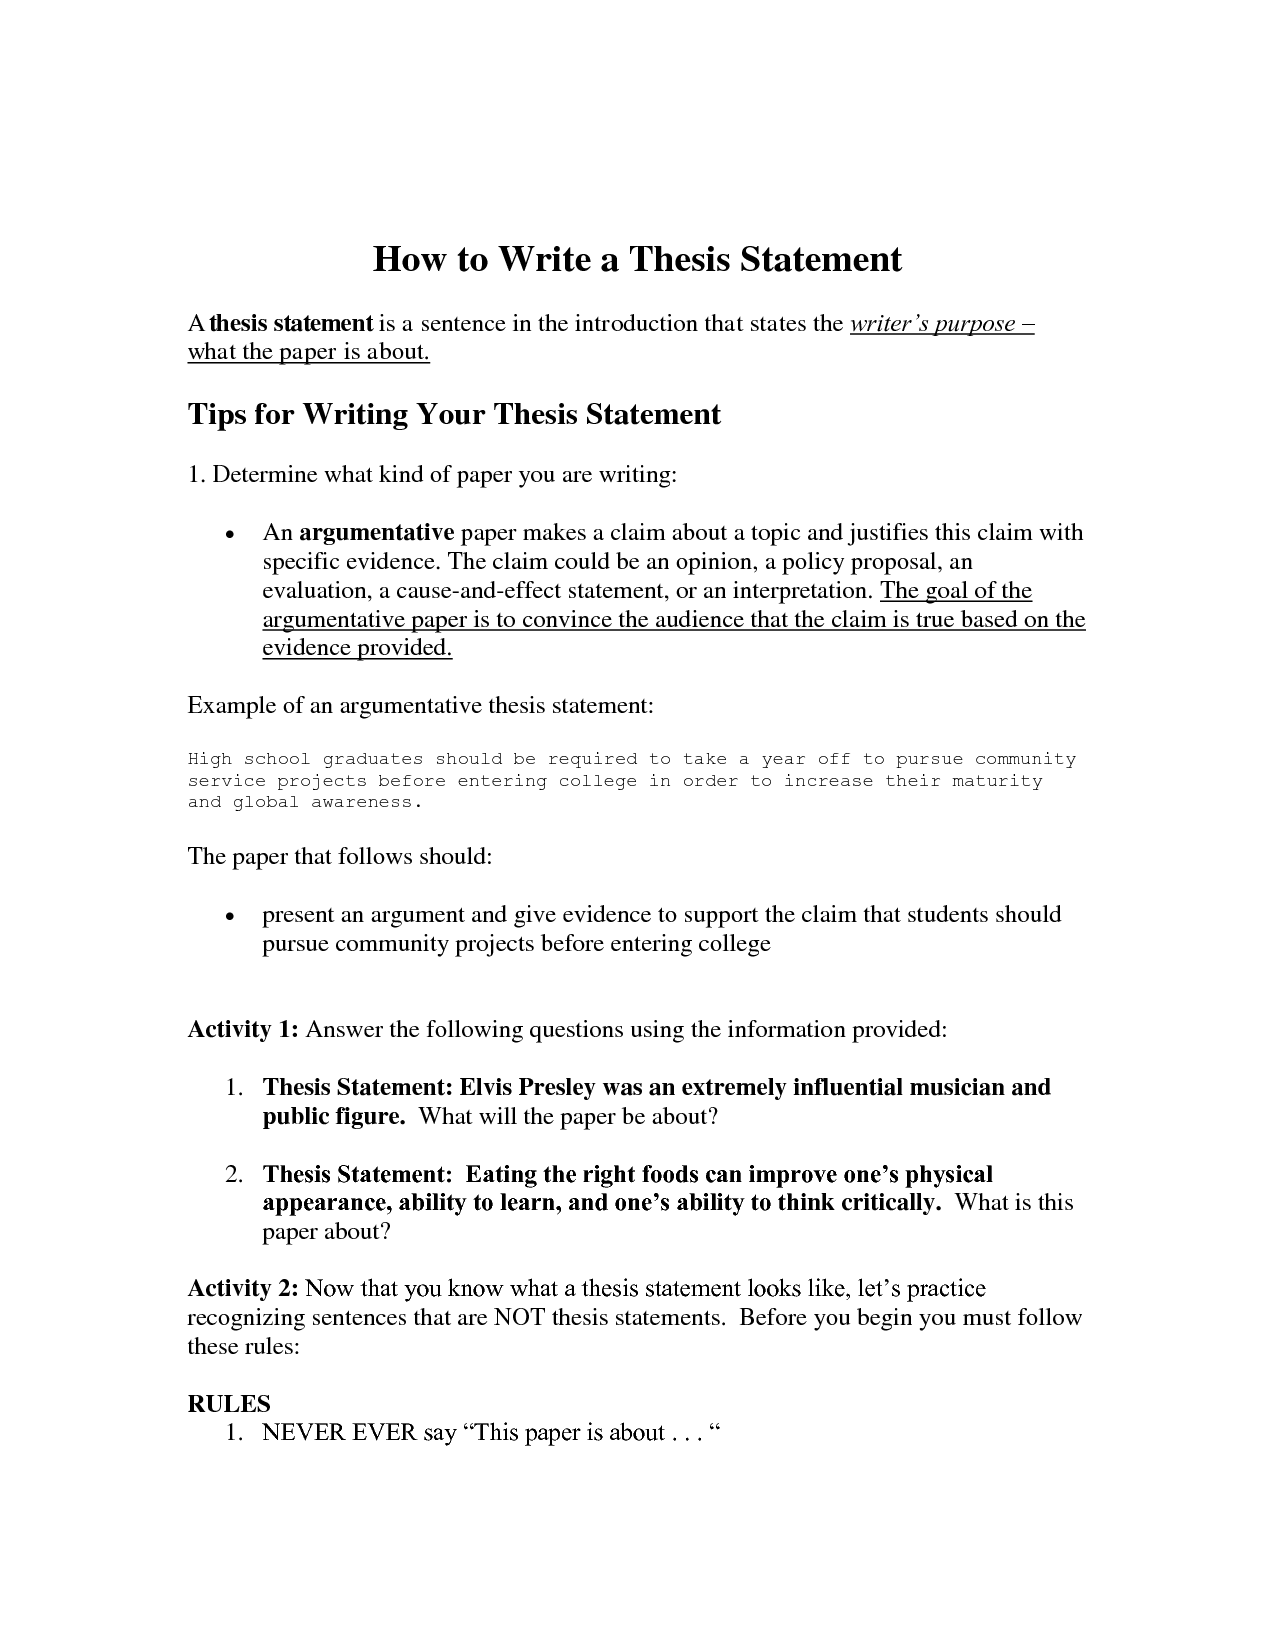 how to write a thesis solution for how to for dummies statements research paper graphicanizers and thesis statement 17 best images about thesis statements research how to write